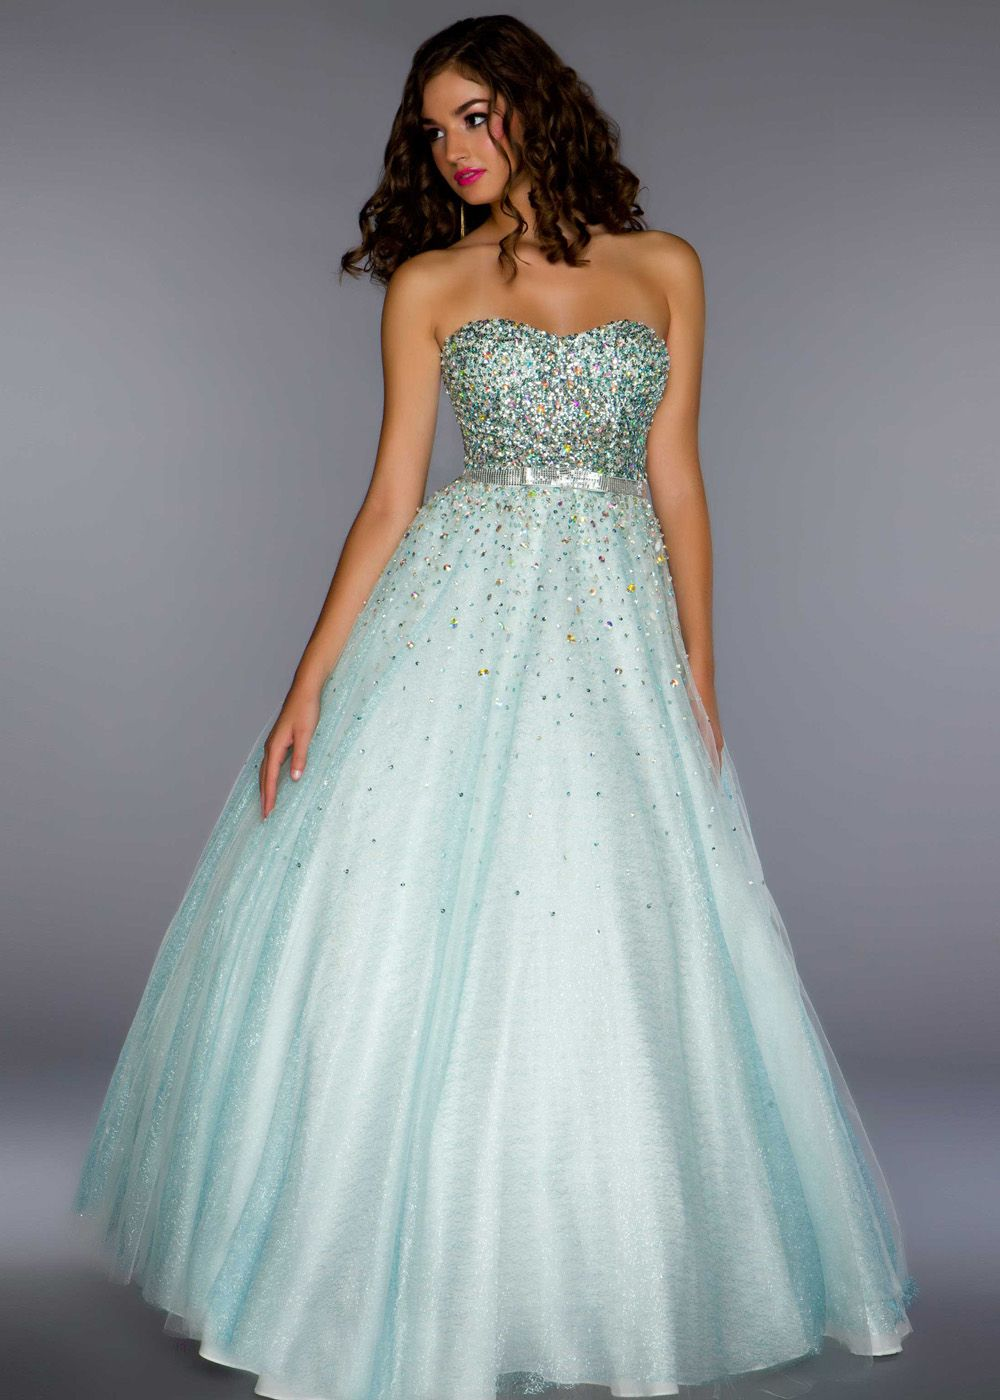 Delighted Prom Dresses Glitter Gallery - Wedding Ideas - memiocall.com